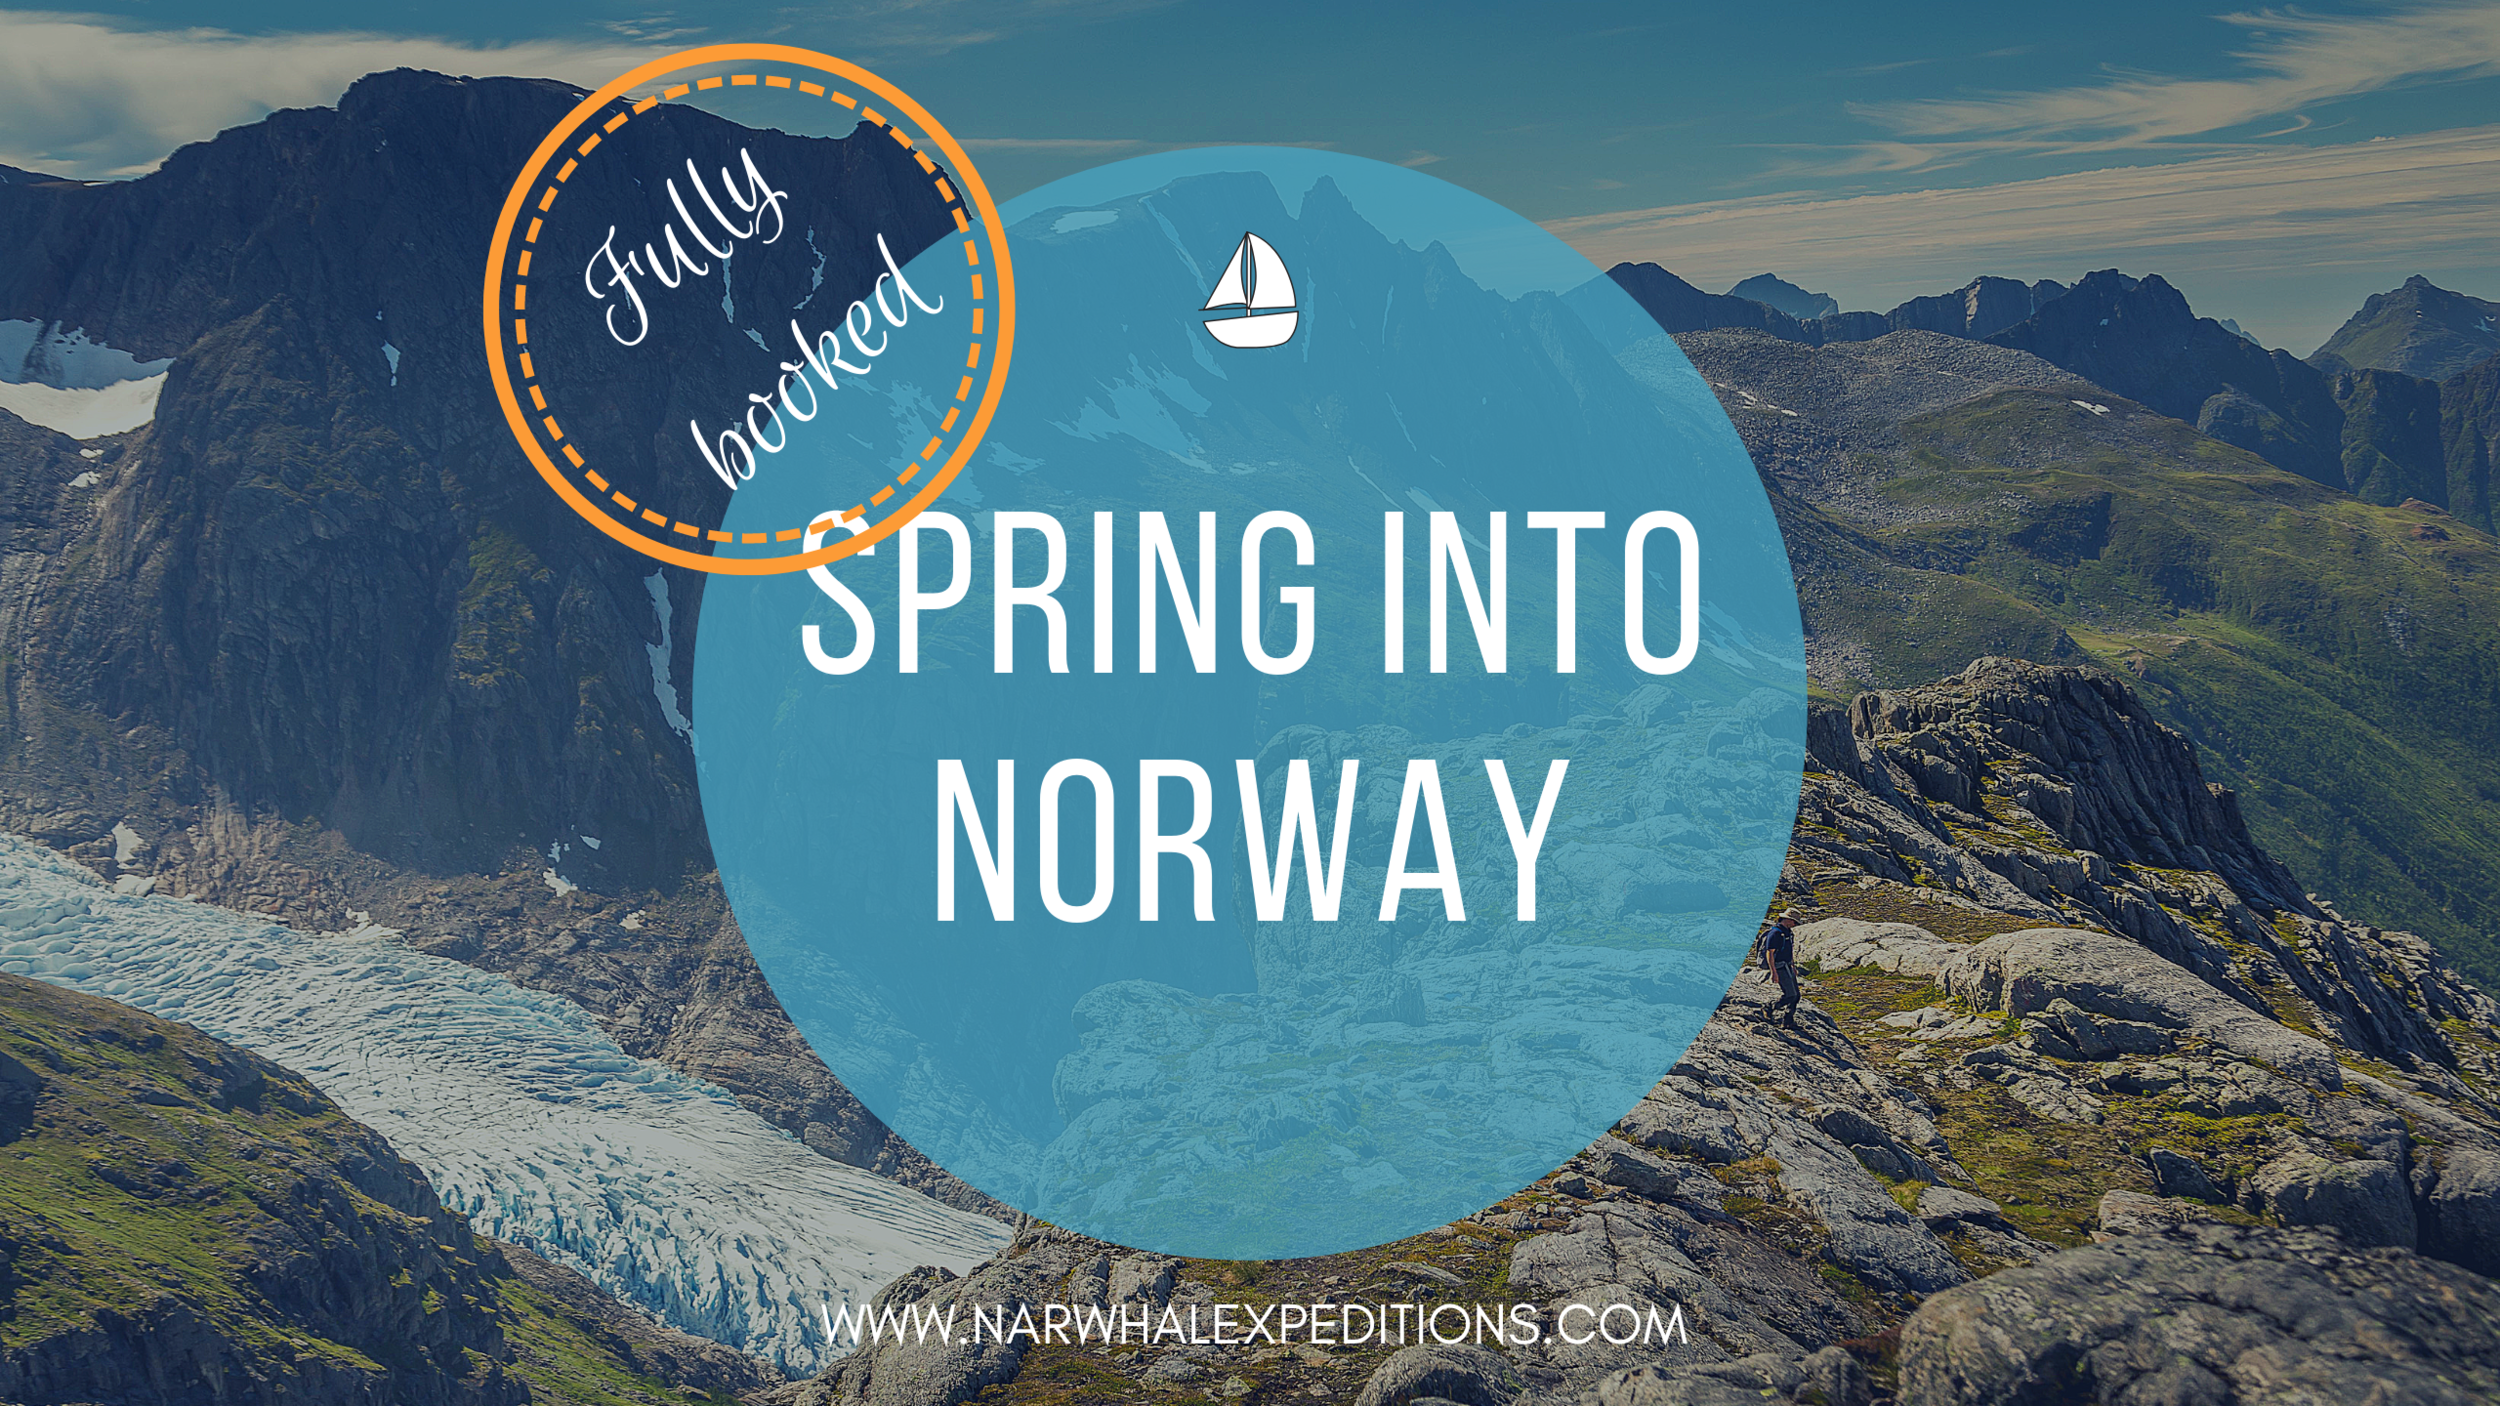 Sailing expedition in the Norwegian fjords